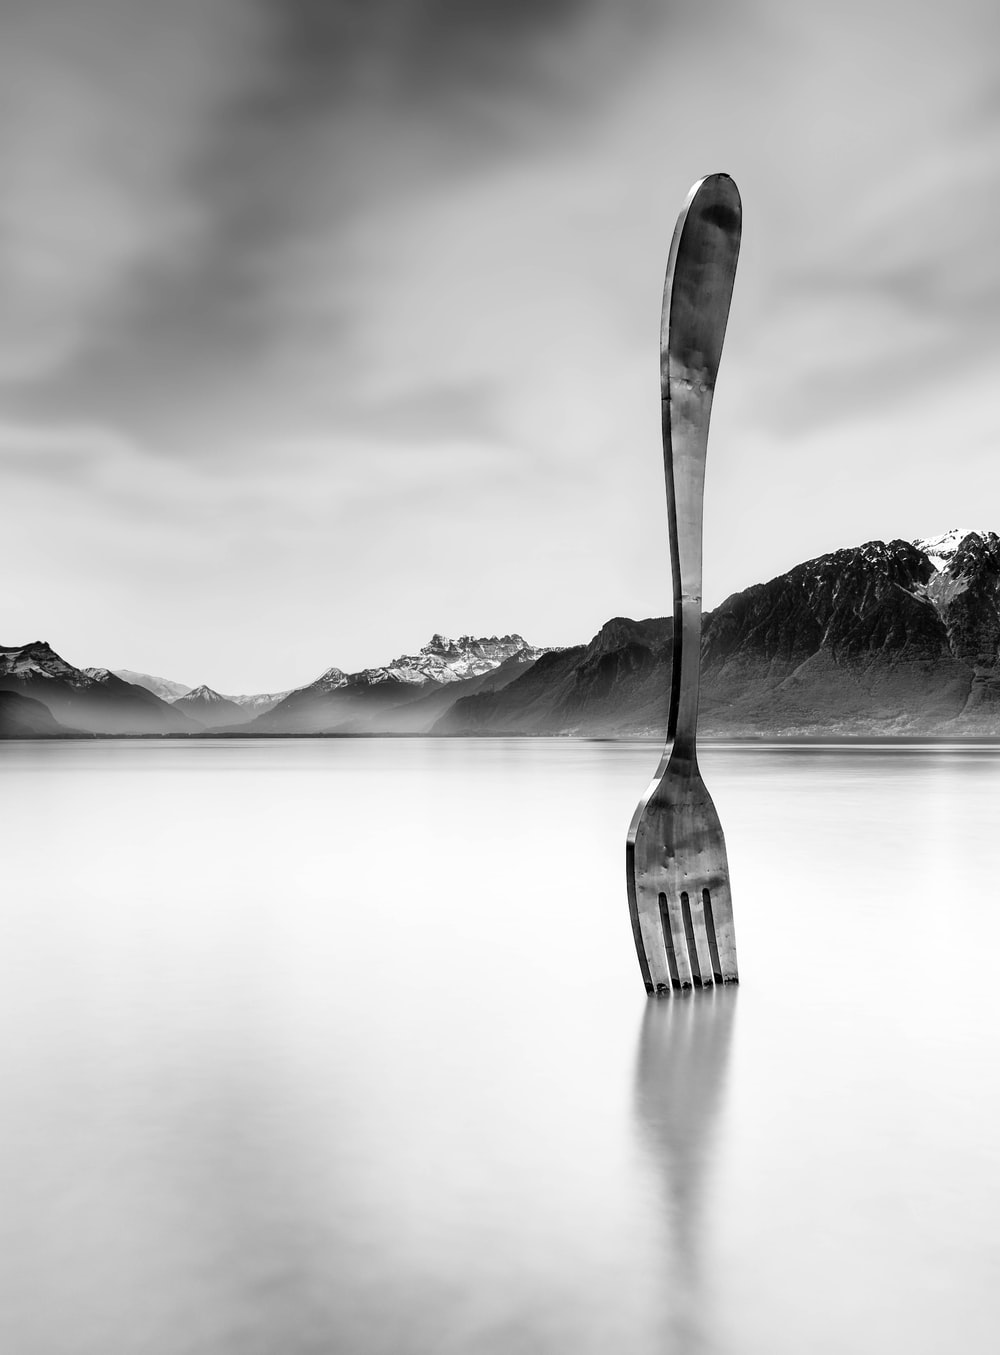 grayscale photo of a fork on a lake